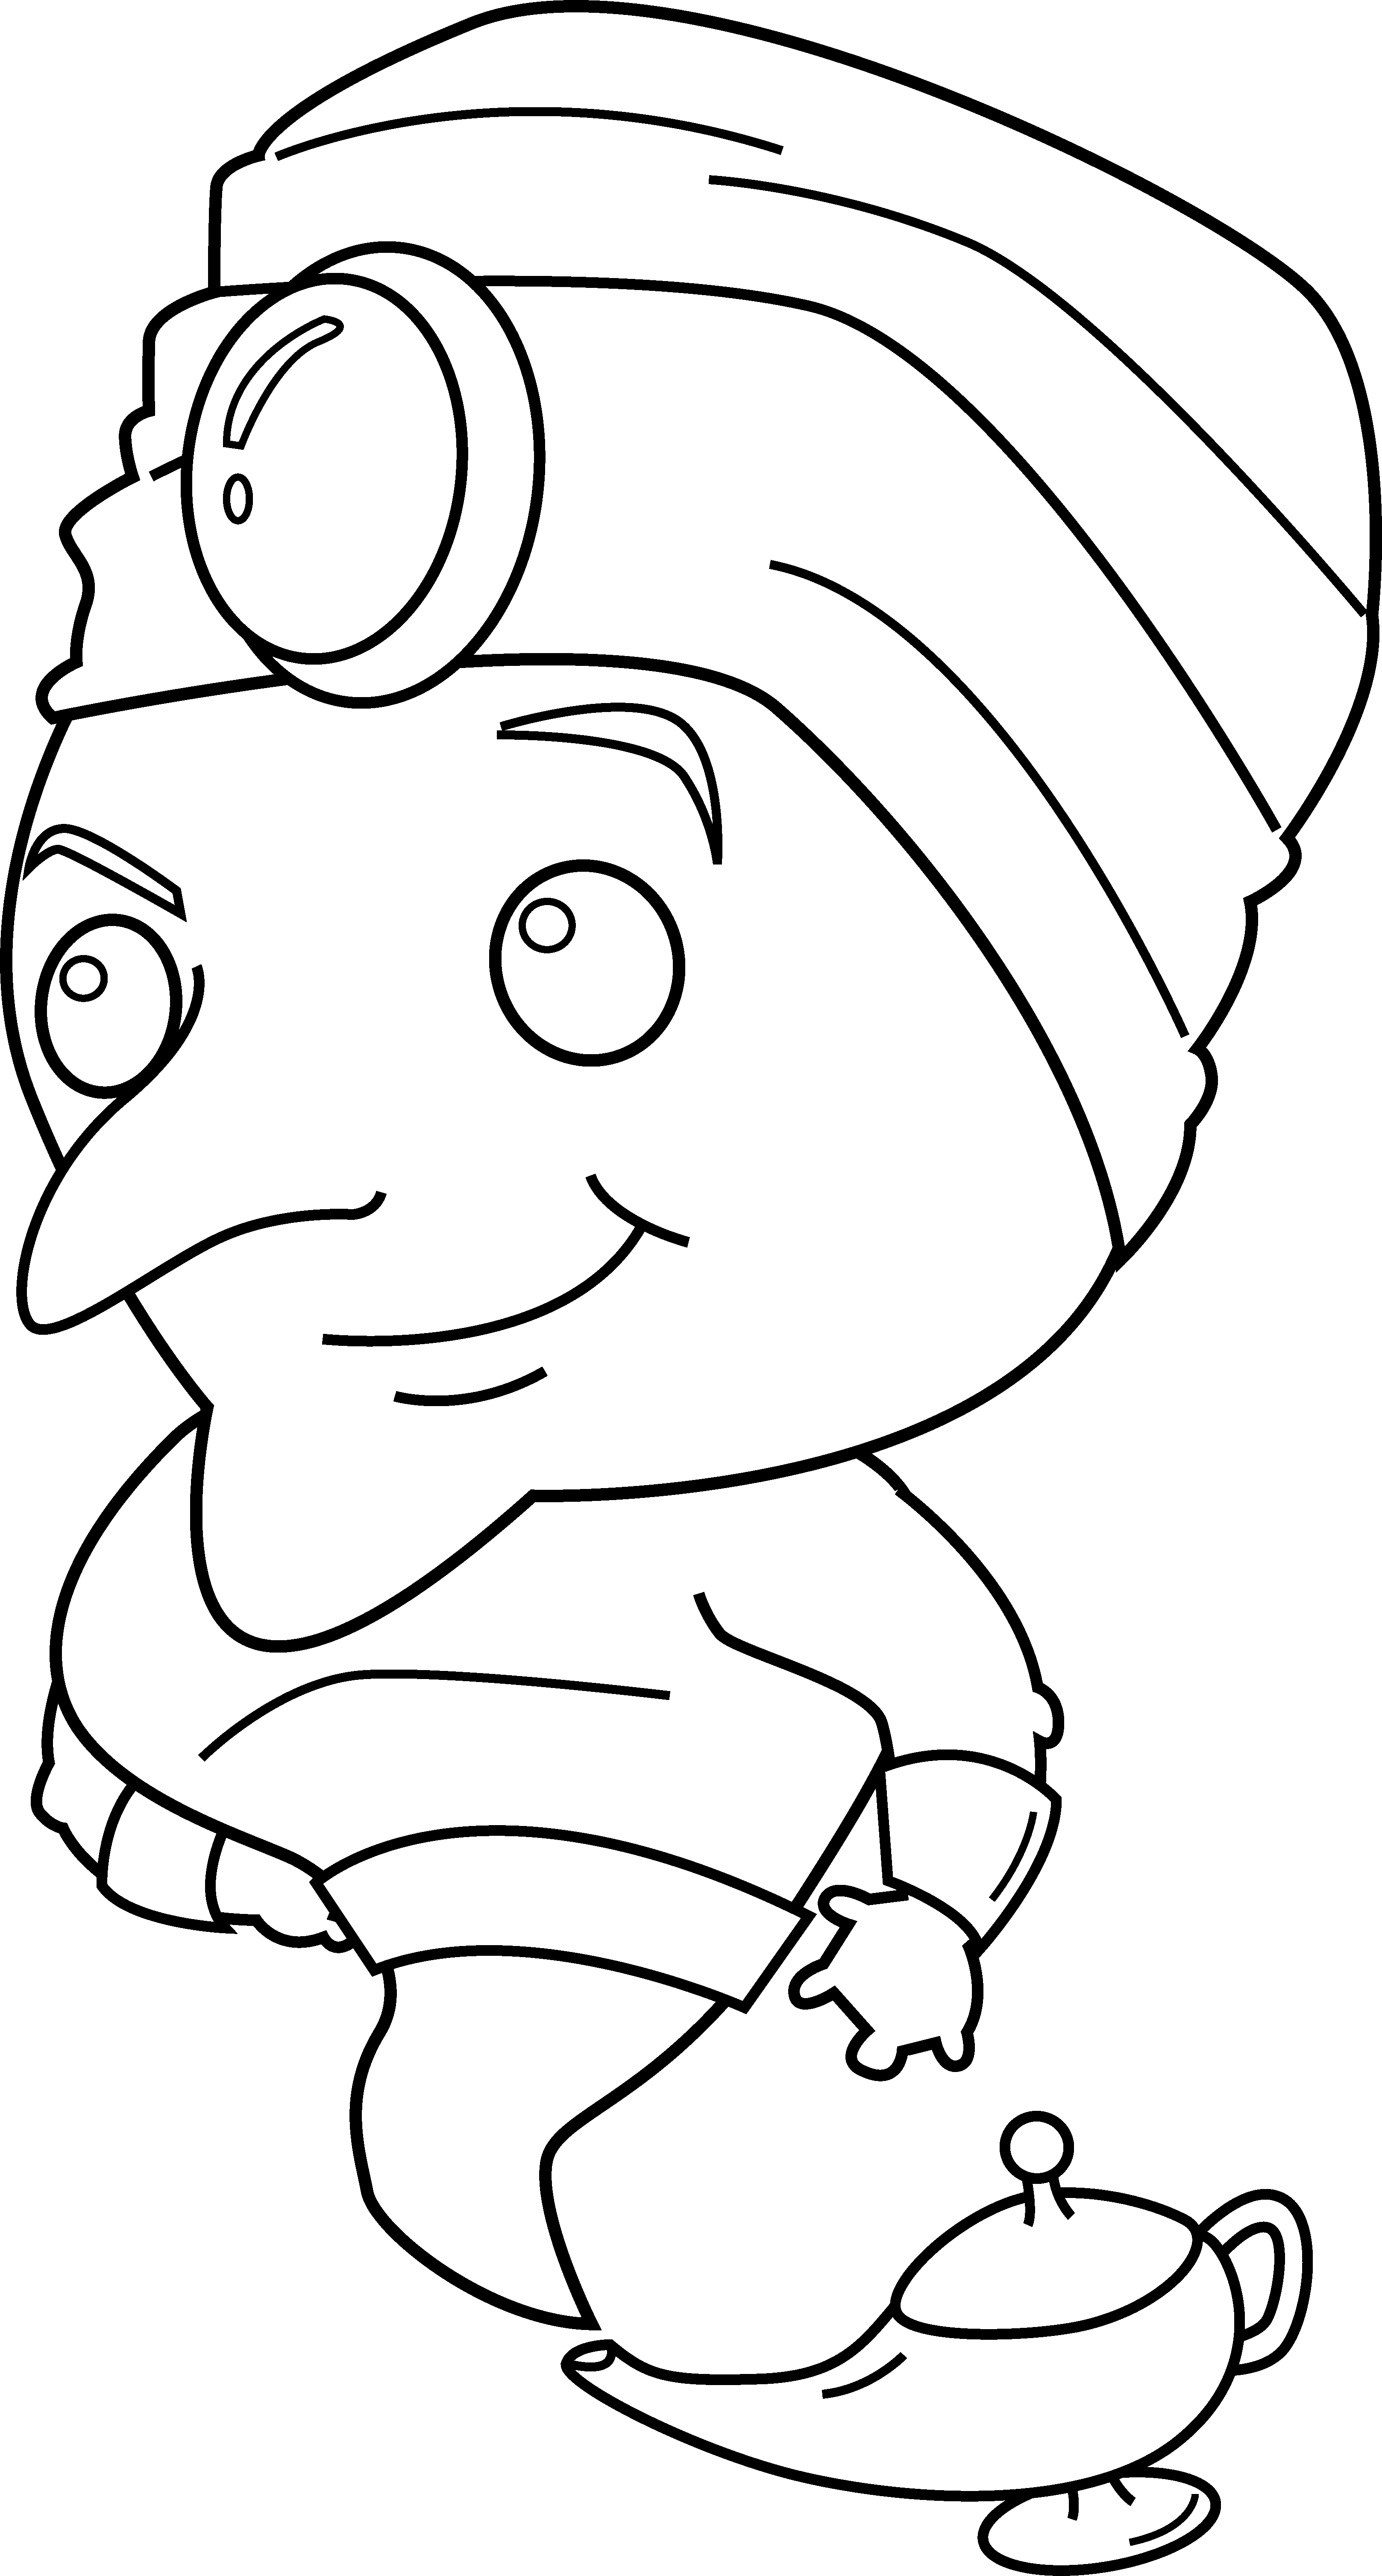 Lamp clipart coloring page. Magic genie free clip